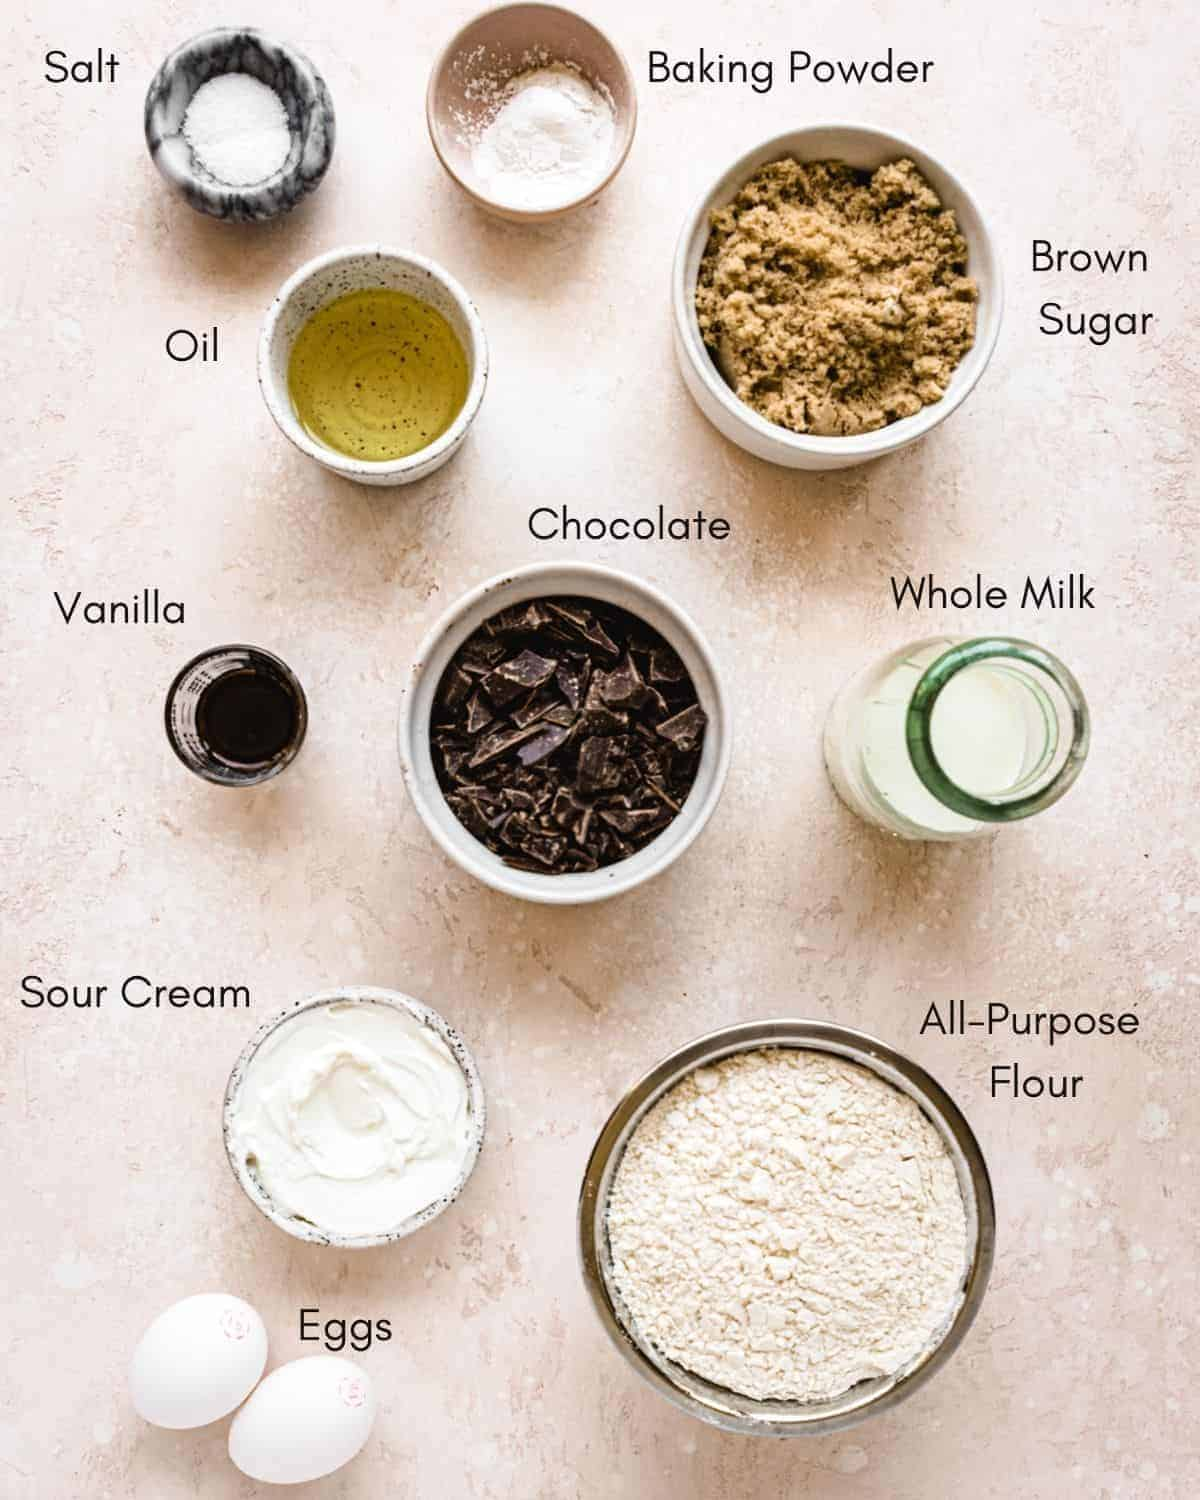 ingredients in bowls with names next to them